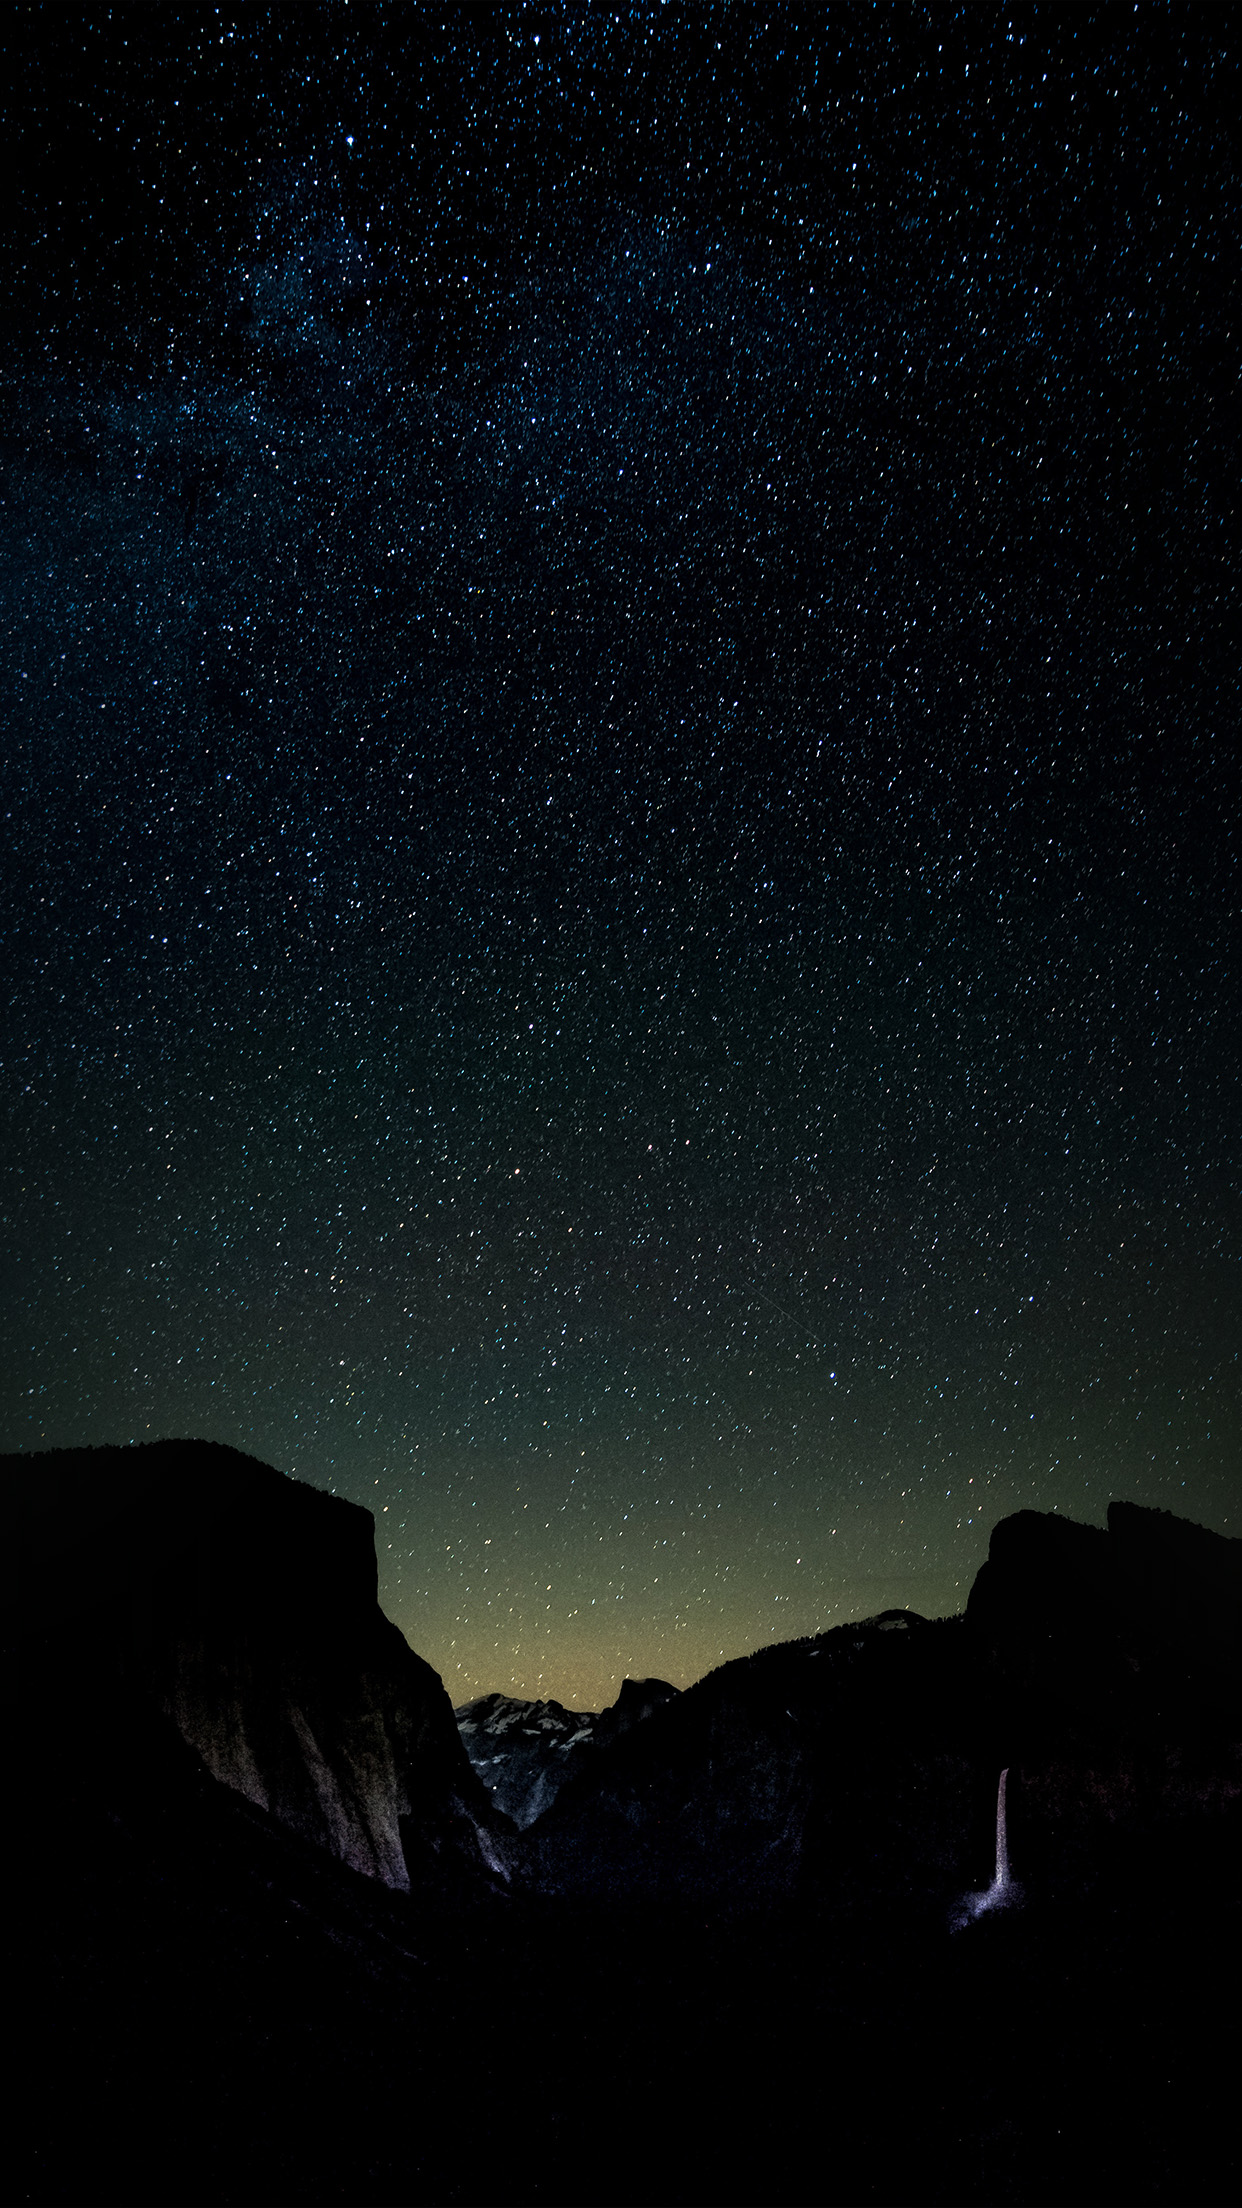 Wallpaper Iphone Pastel Papers Co Iphone Wallpaper Ns67 Sky Aurora Night Nature